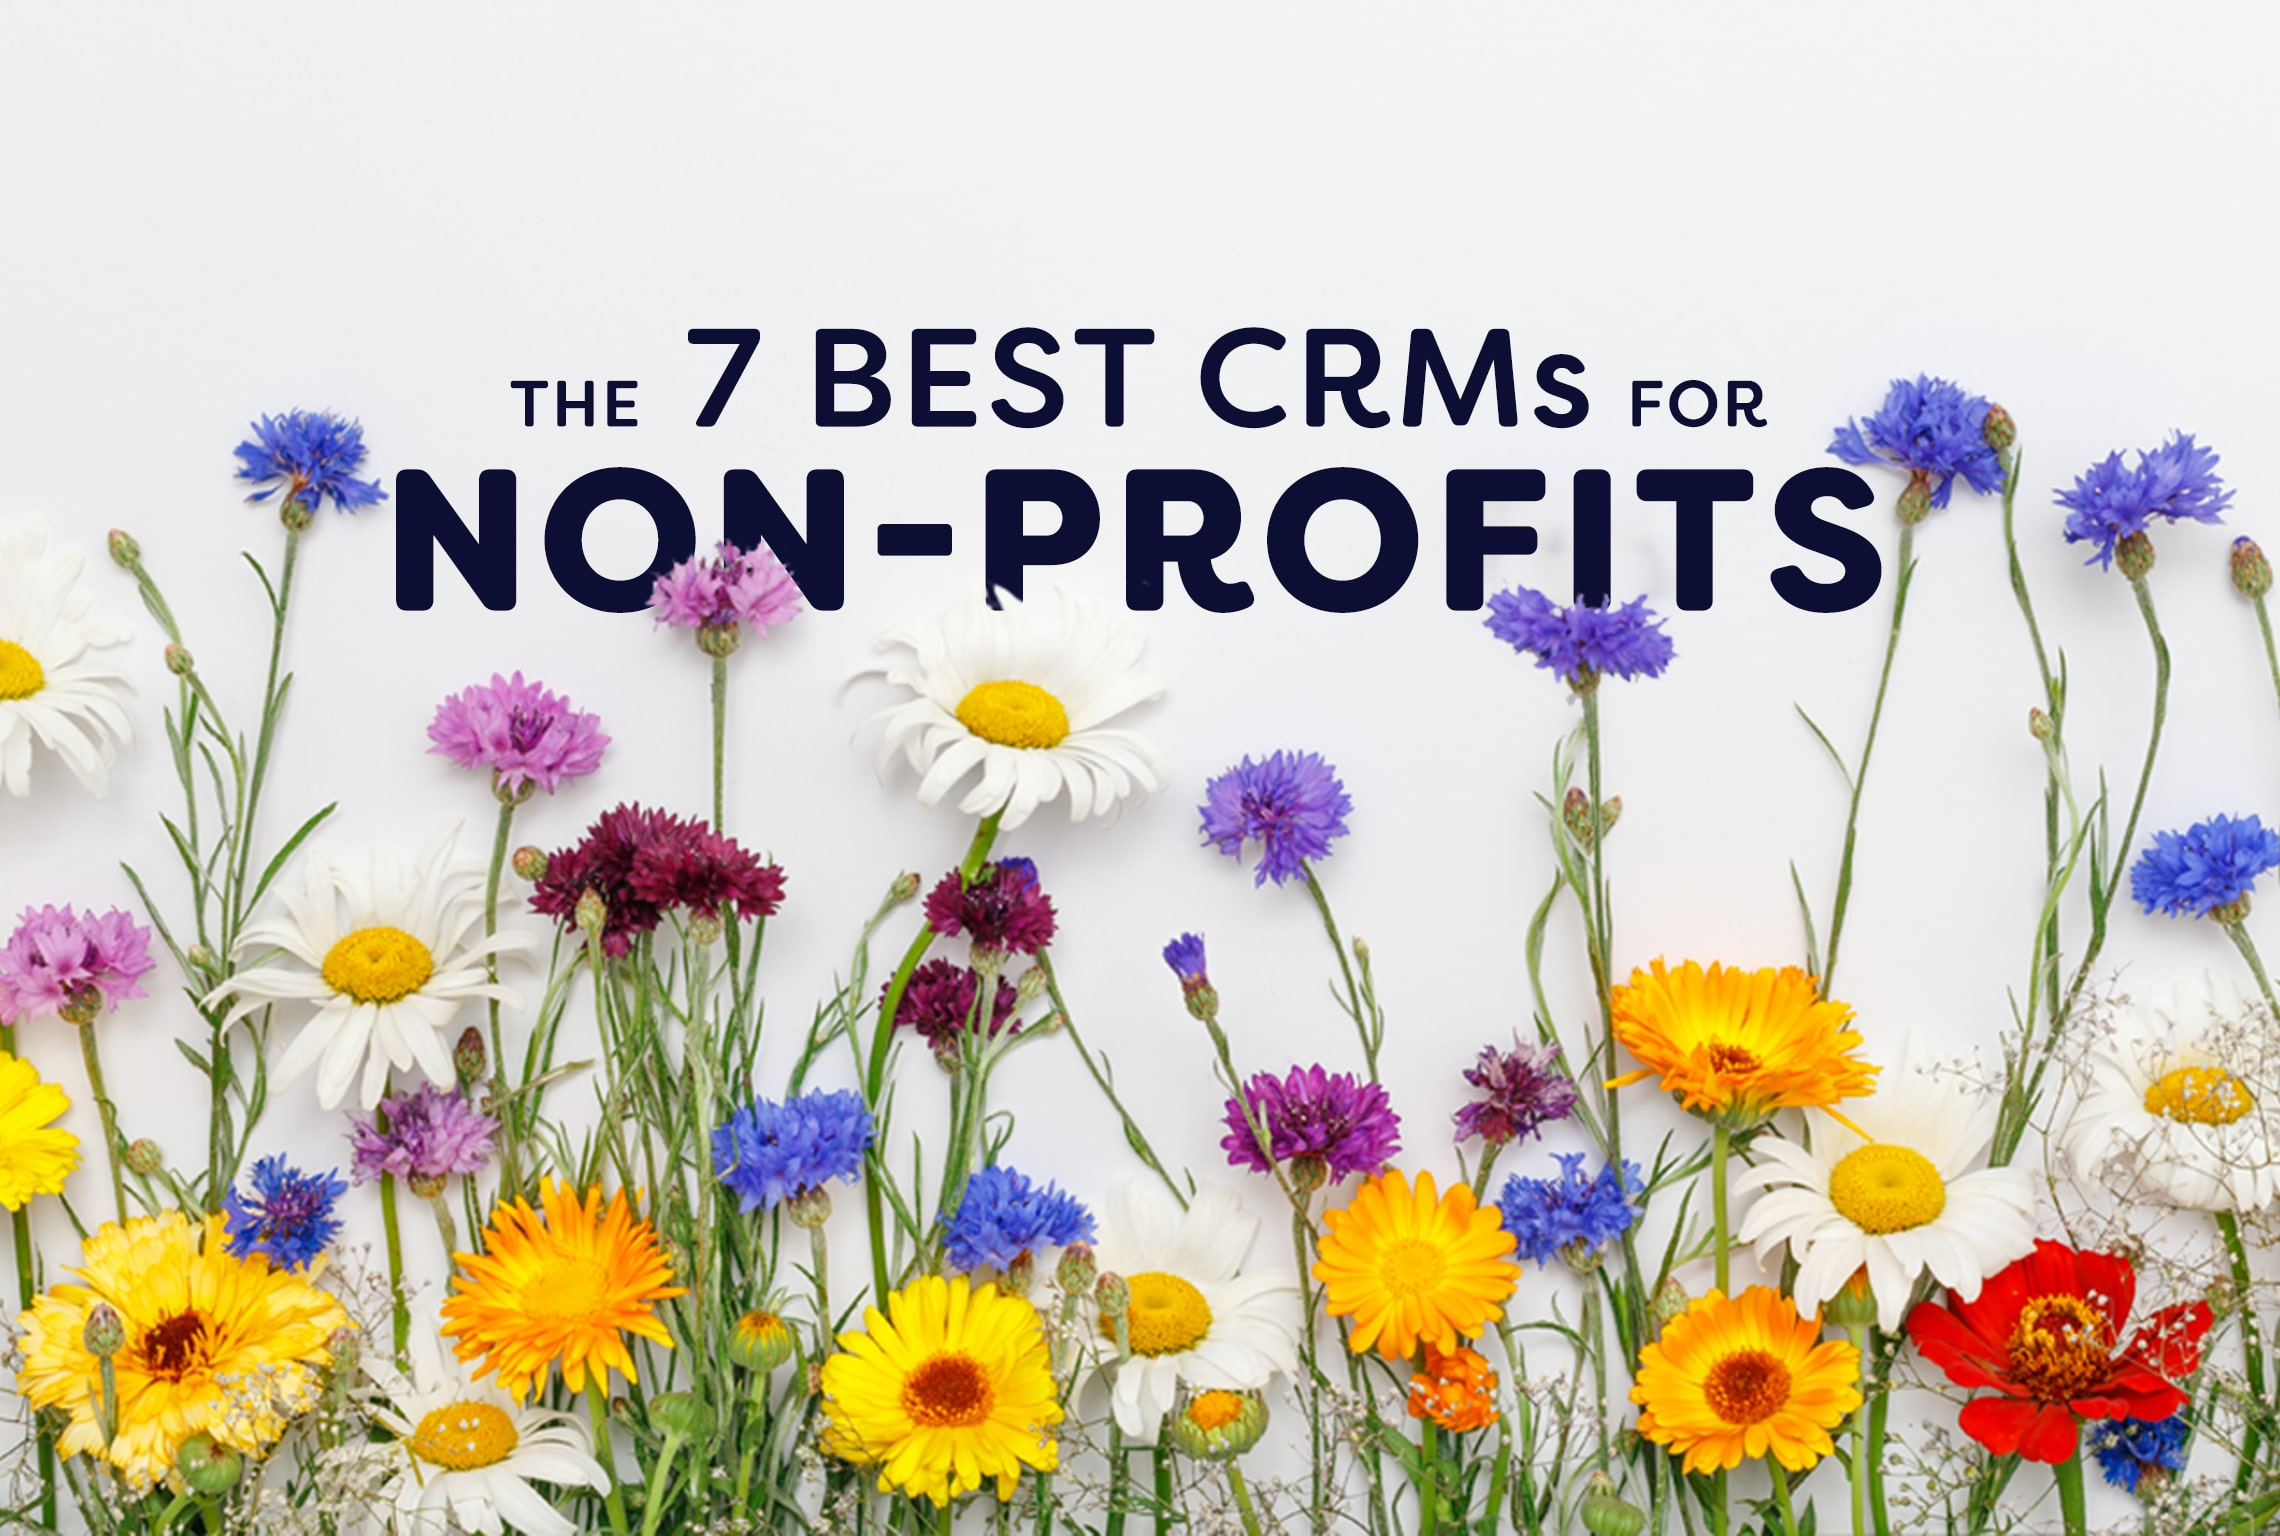 best crms for nonprofits non-profit crm